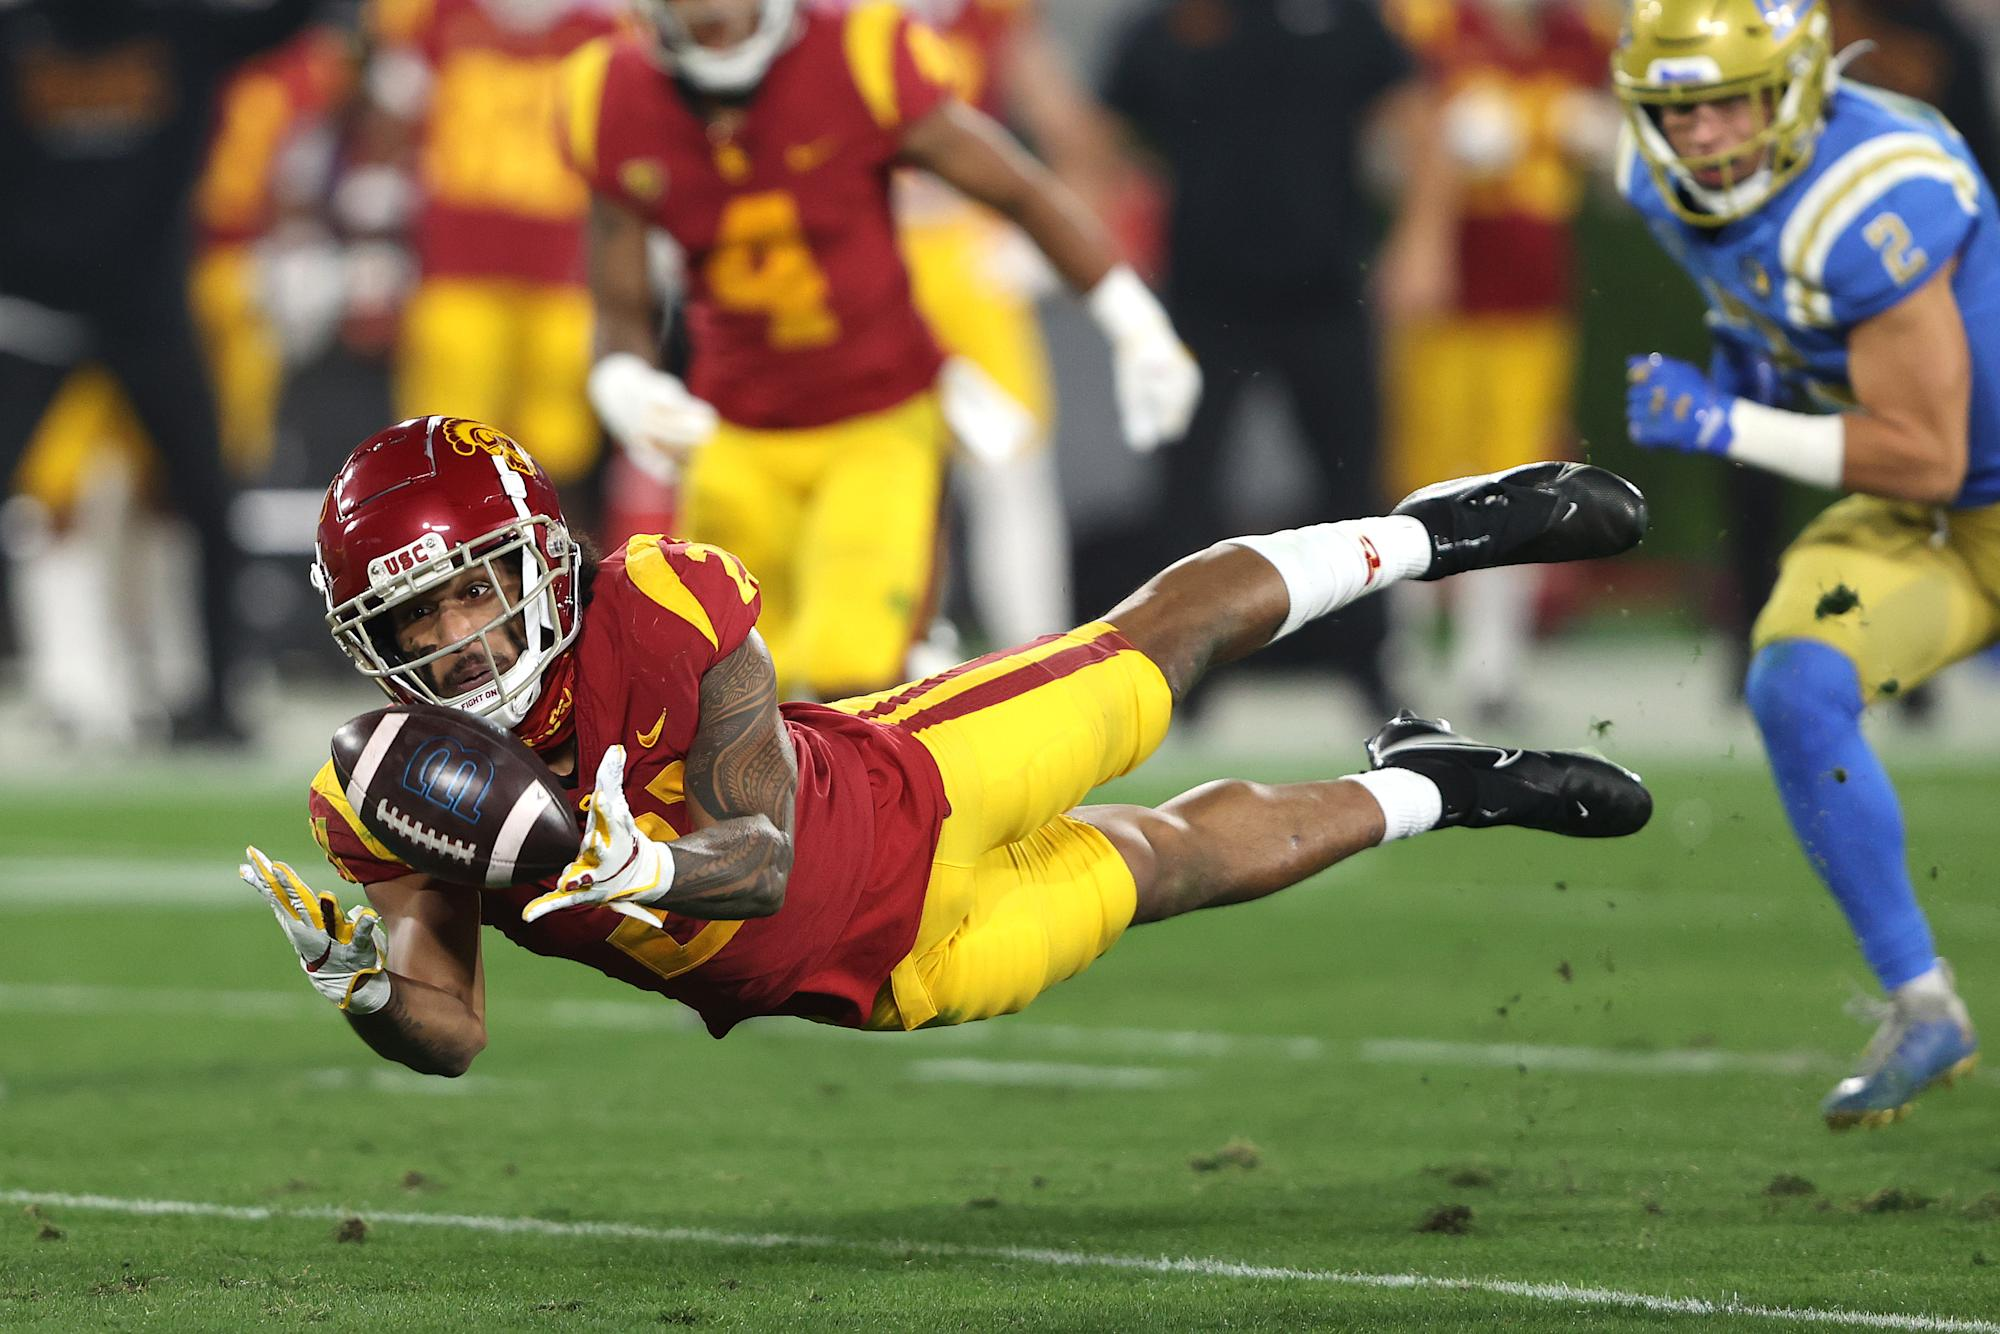 Ucla usc betting line 2021 ford trinidad and tobago guardian sports betting